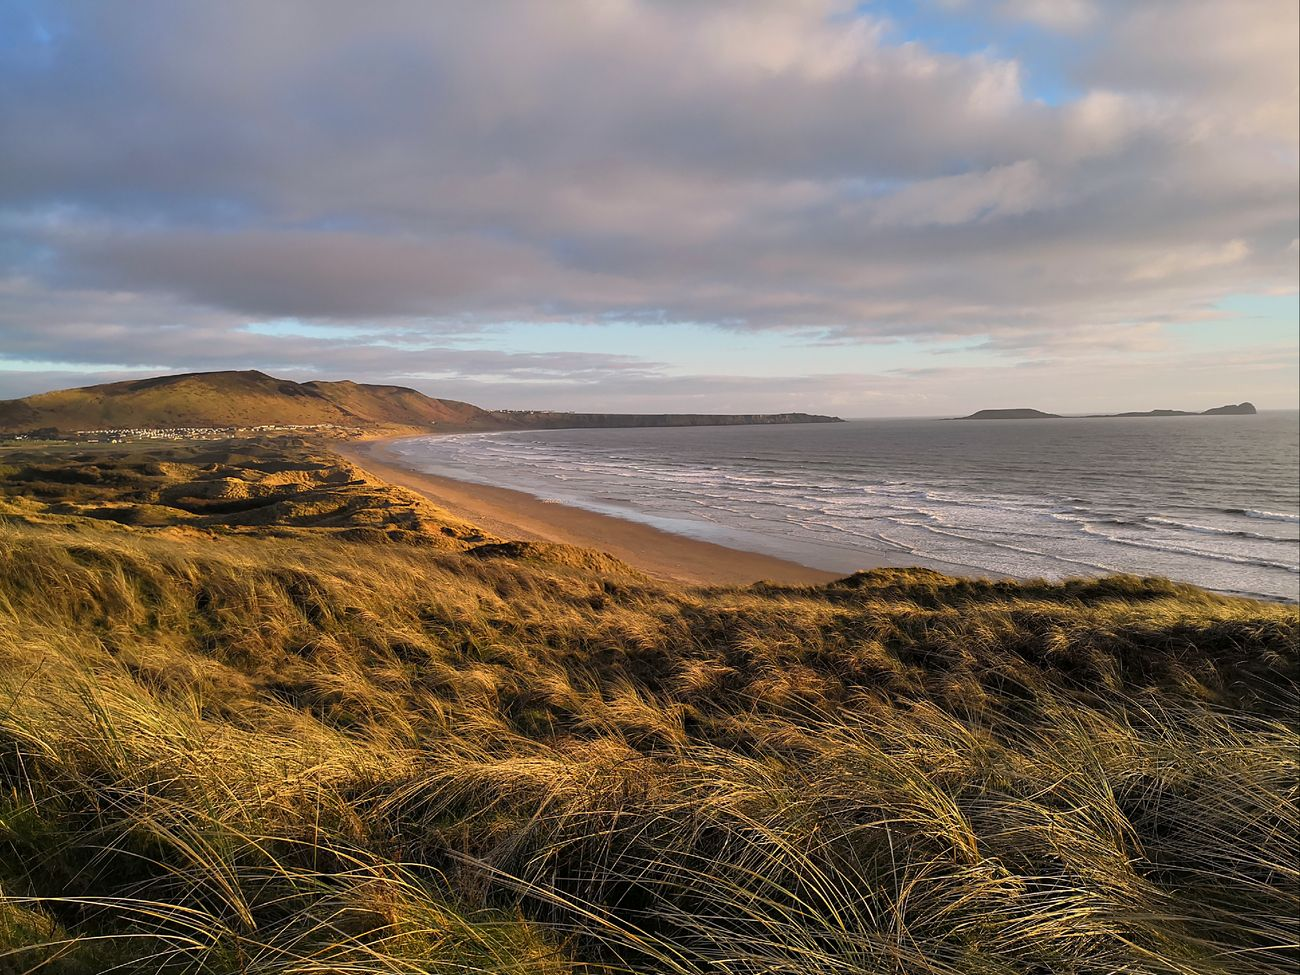 Sand dunes and evening sun from Spaniard's rocks to